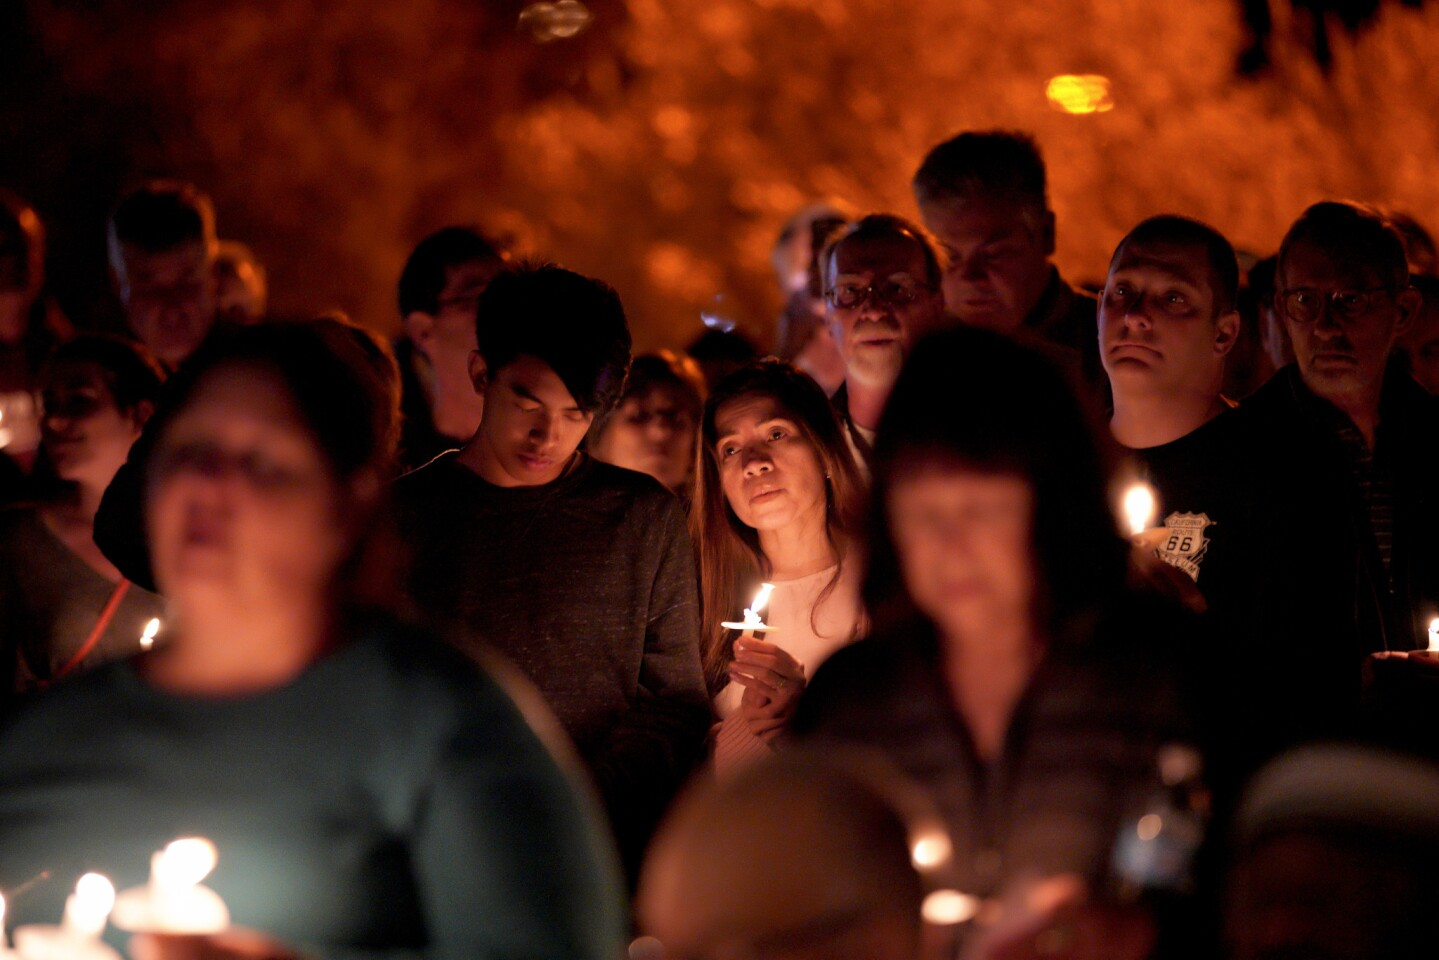 Members of the community came to unite for a candle light vigil at Temple Adat Shalom in Poway to honor the 11 victims killed in a Pittsburgh synagogue last Saturday.